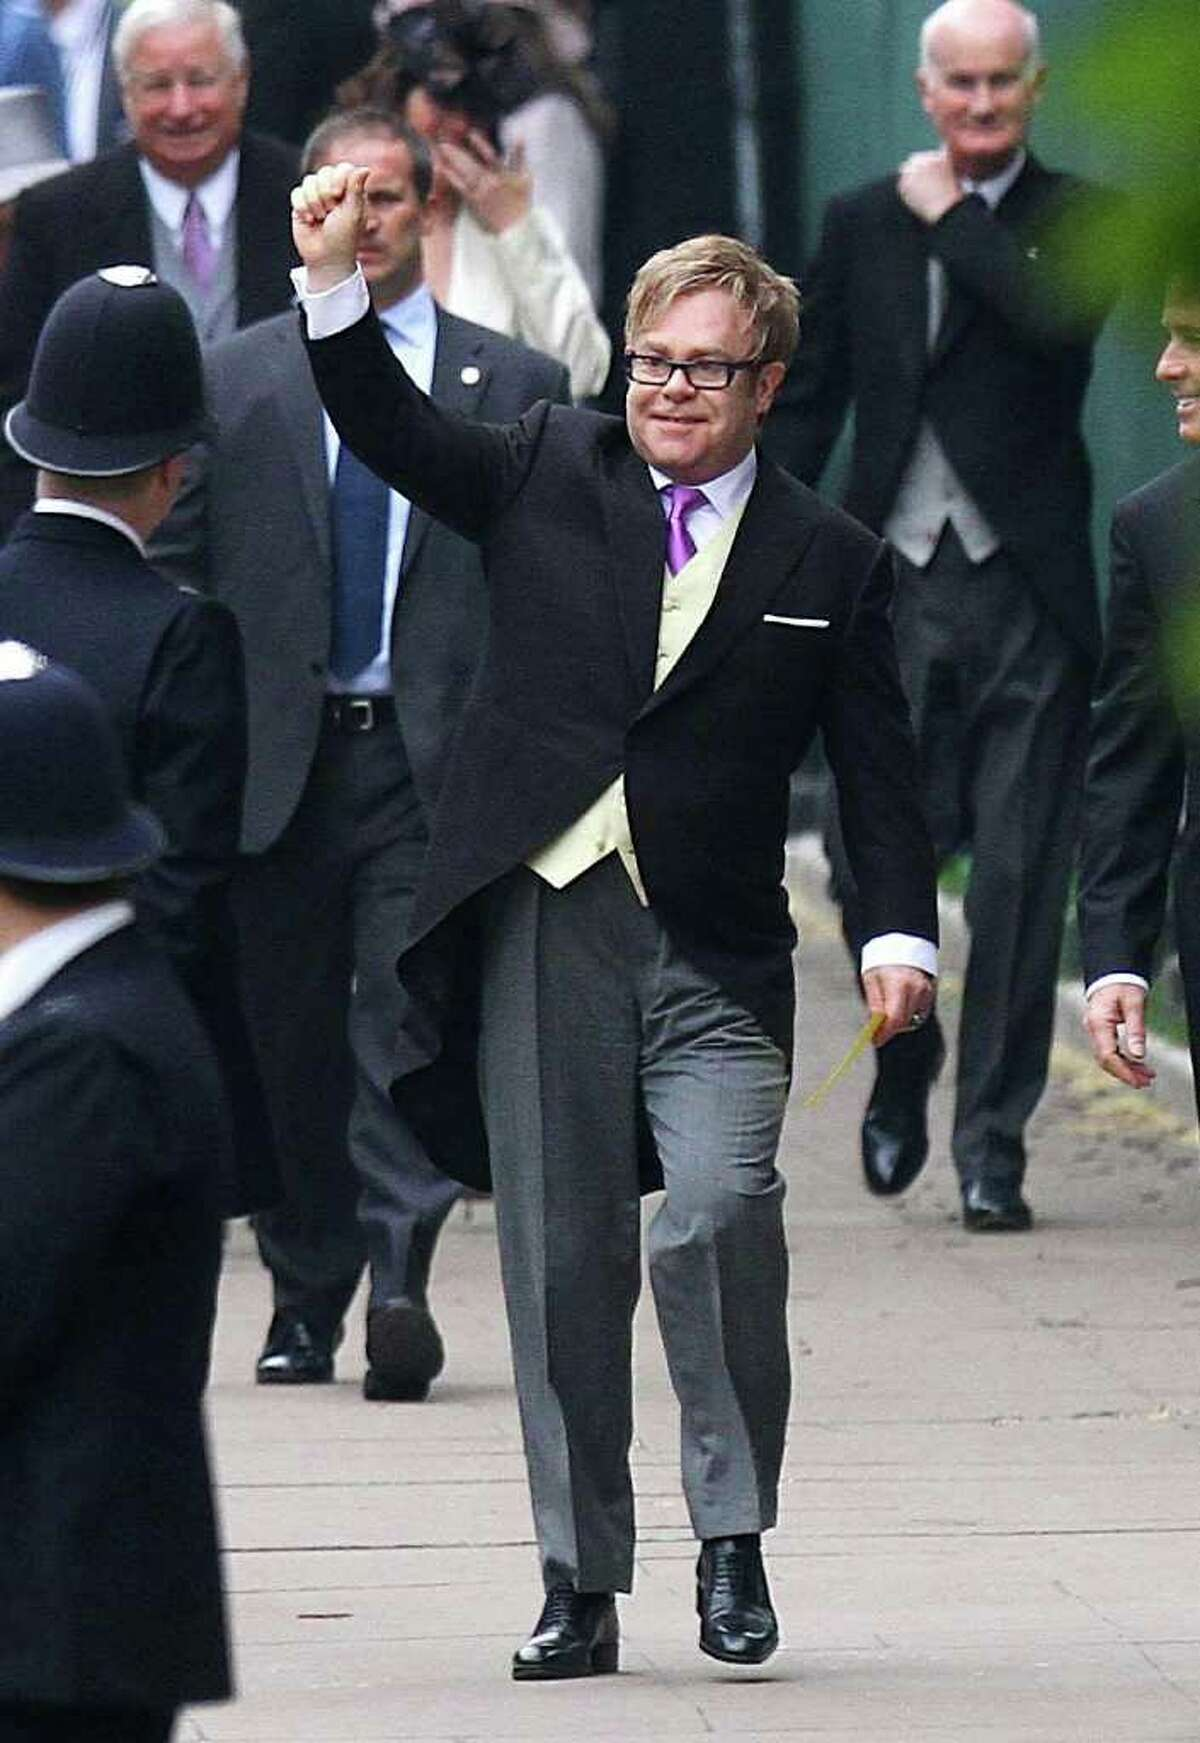 Musician Elton John arrives at Westminster Abbey, London, for the wedding of Britain's Prince William and Kate Middleton Friday April 29, 2011. UNITED KINGDOM OUT